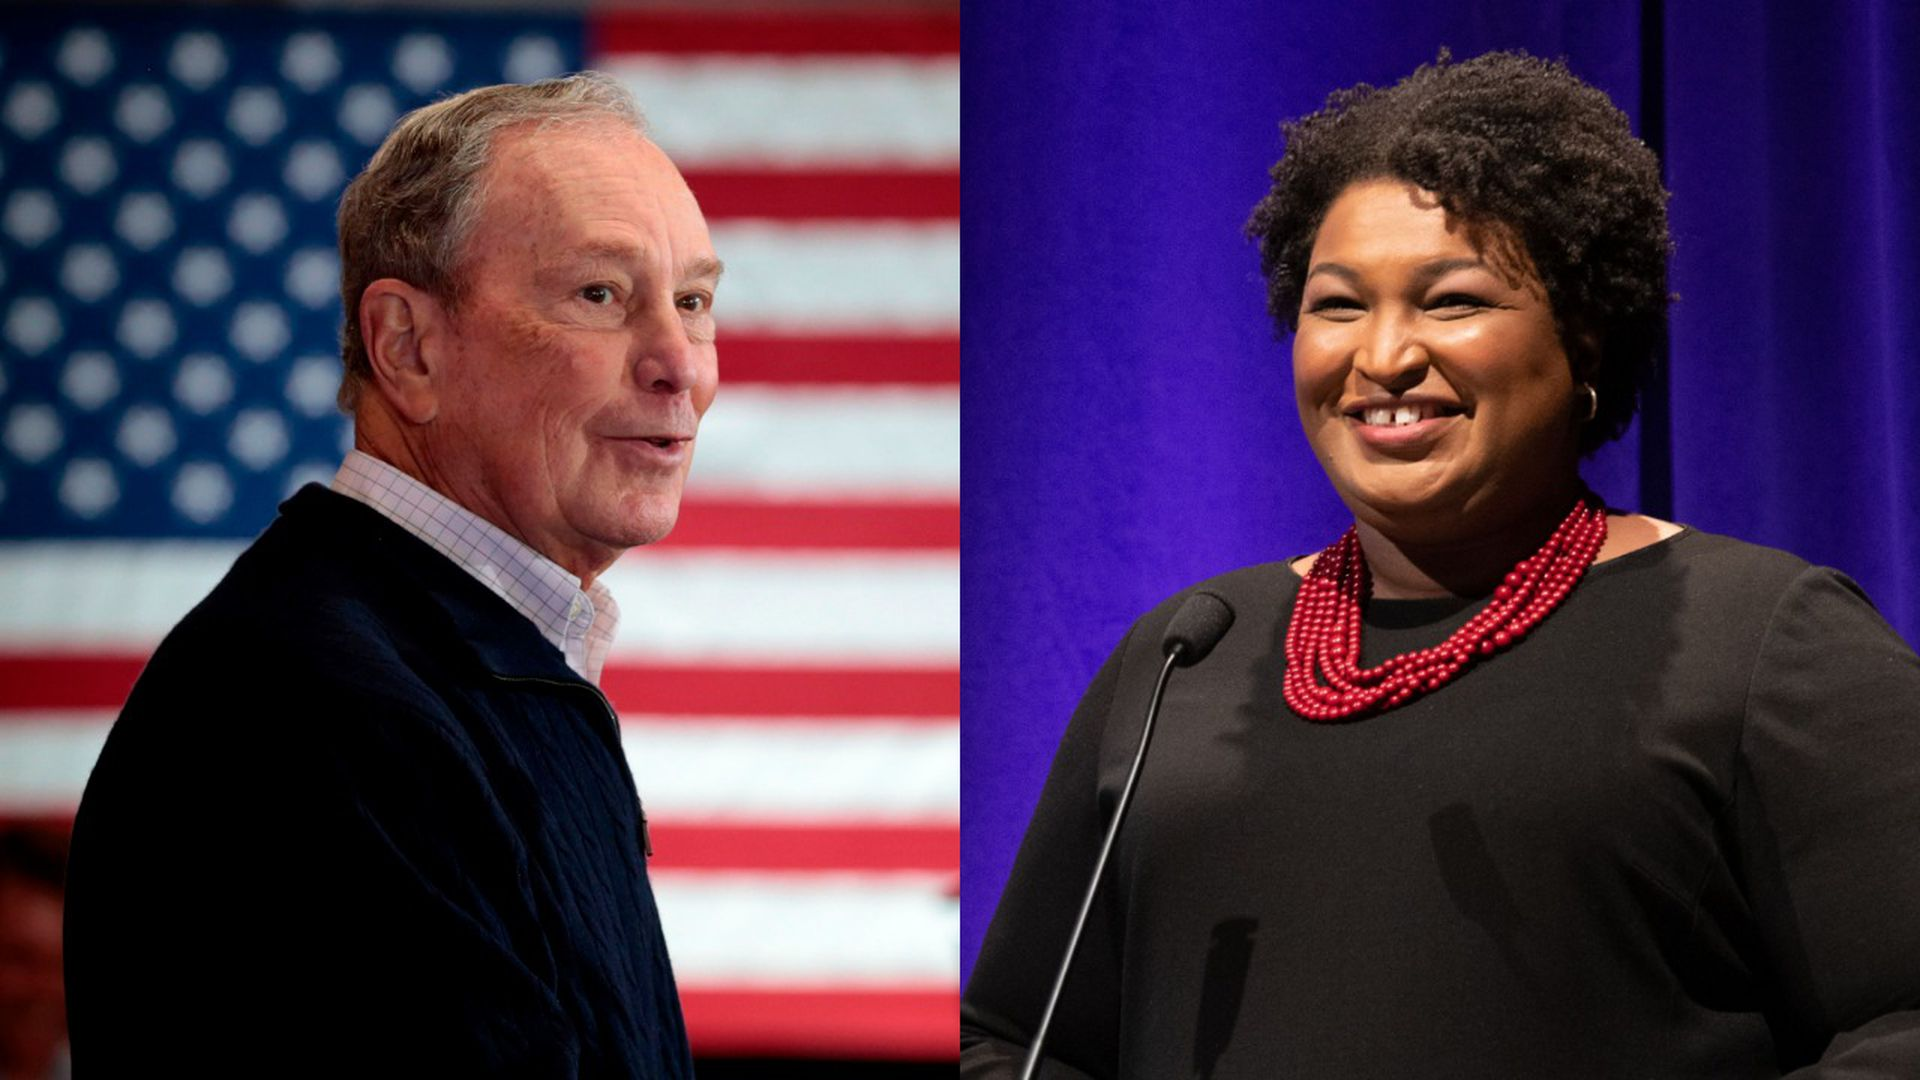 Bloomberg to join Stacey Abrams at voting rights event in Georgia